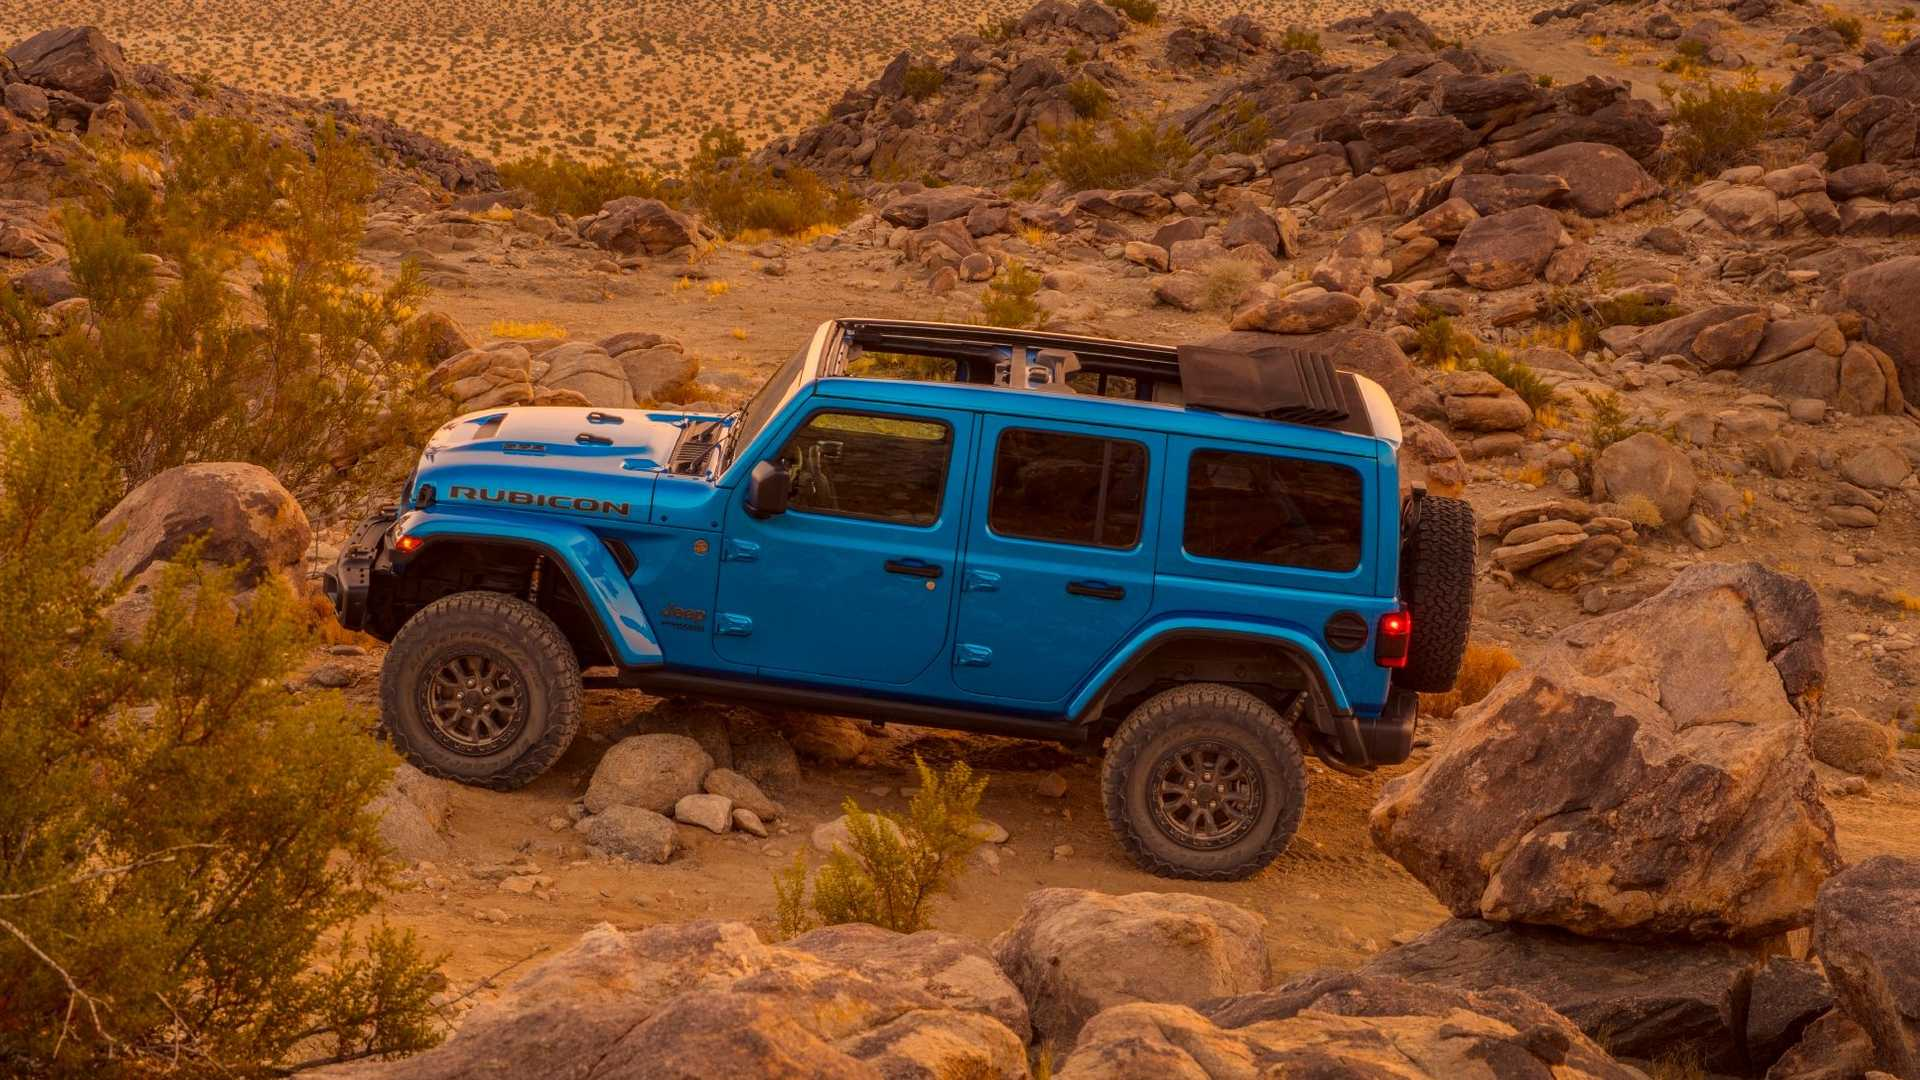 2021-jeep-wrangler-rubicon-392-side-view-2